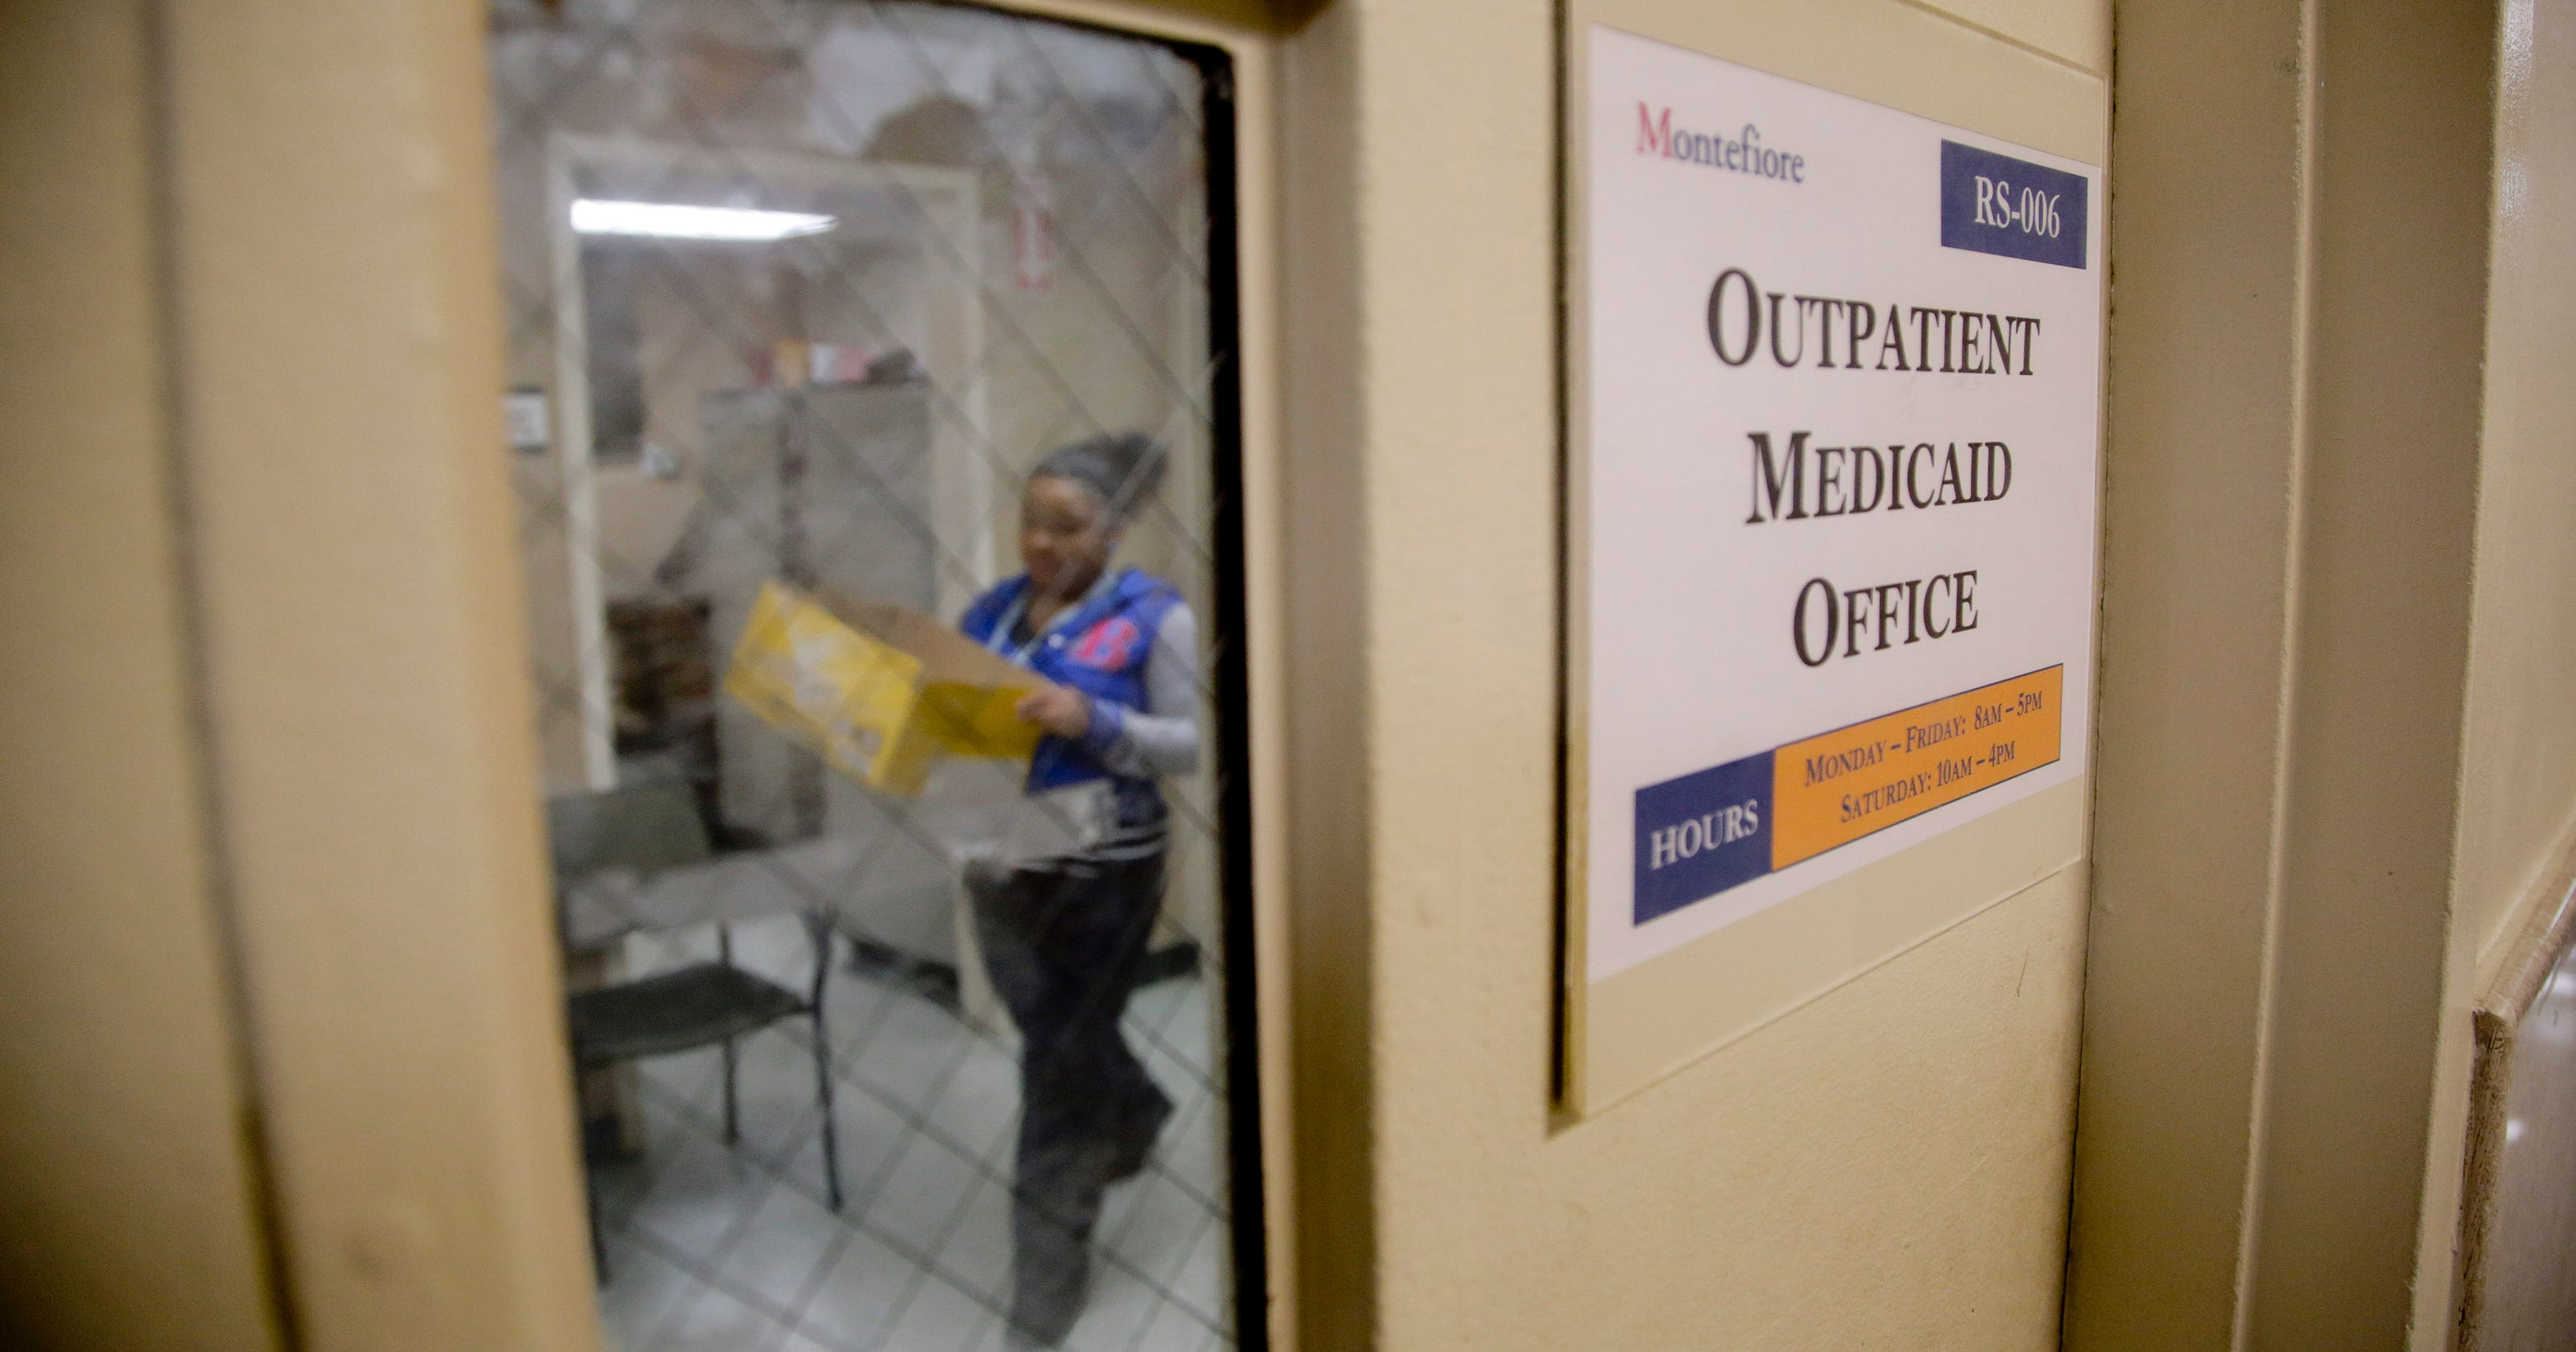 Doctors face big cuts in Medicaid pay